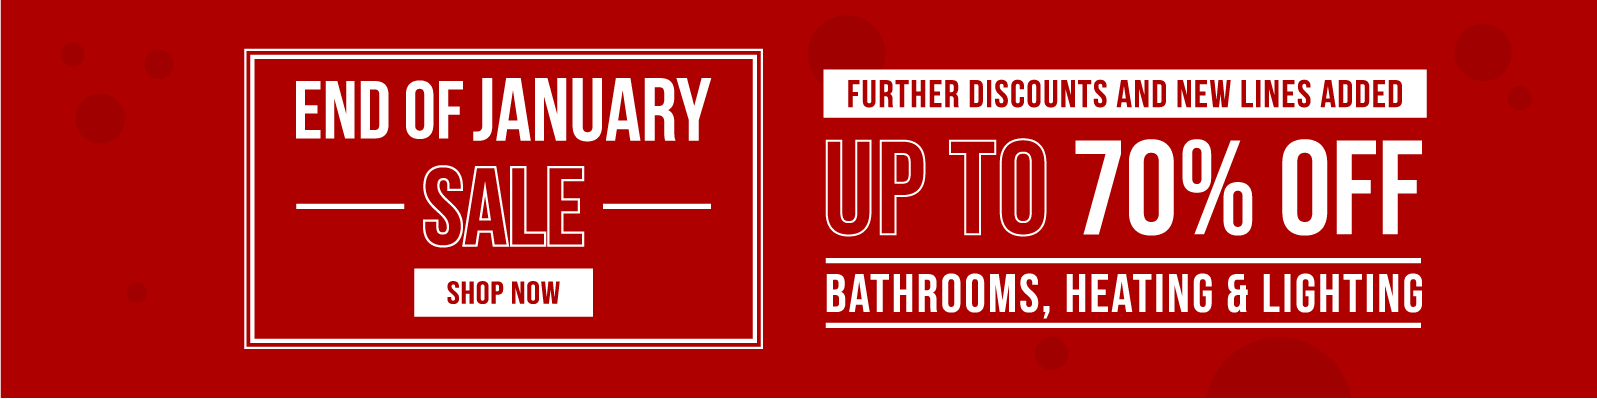 End of January Sale Up to 70% off Bathrooms, Heating & Lighting Further Discounts & New Lines Added